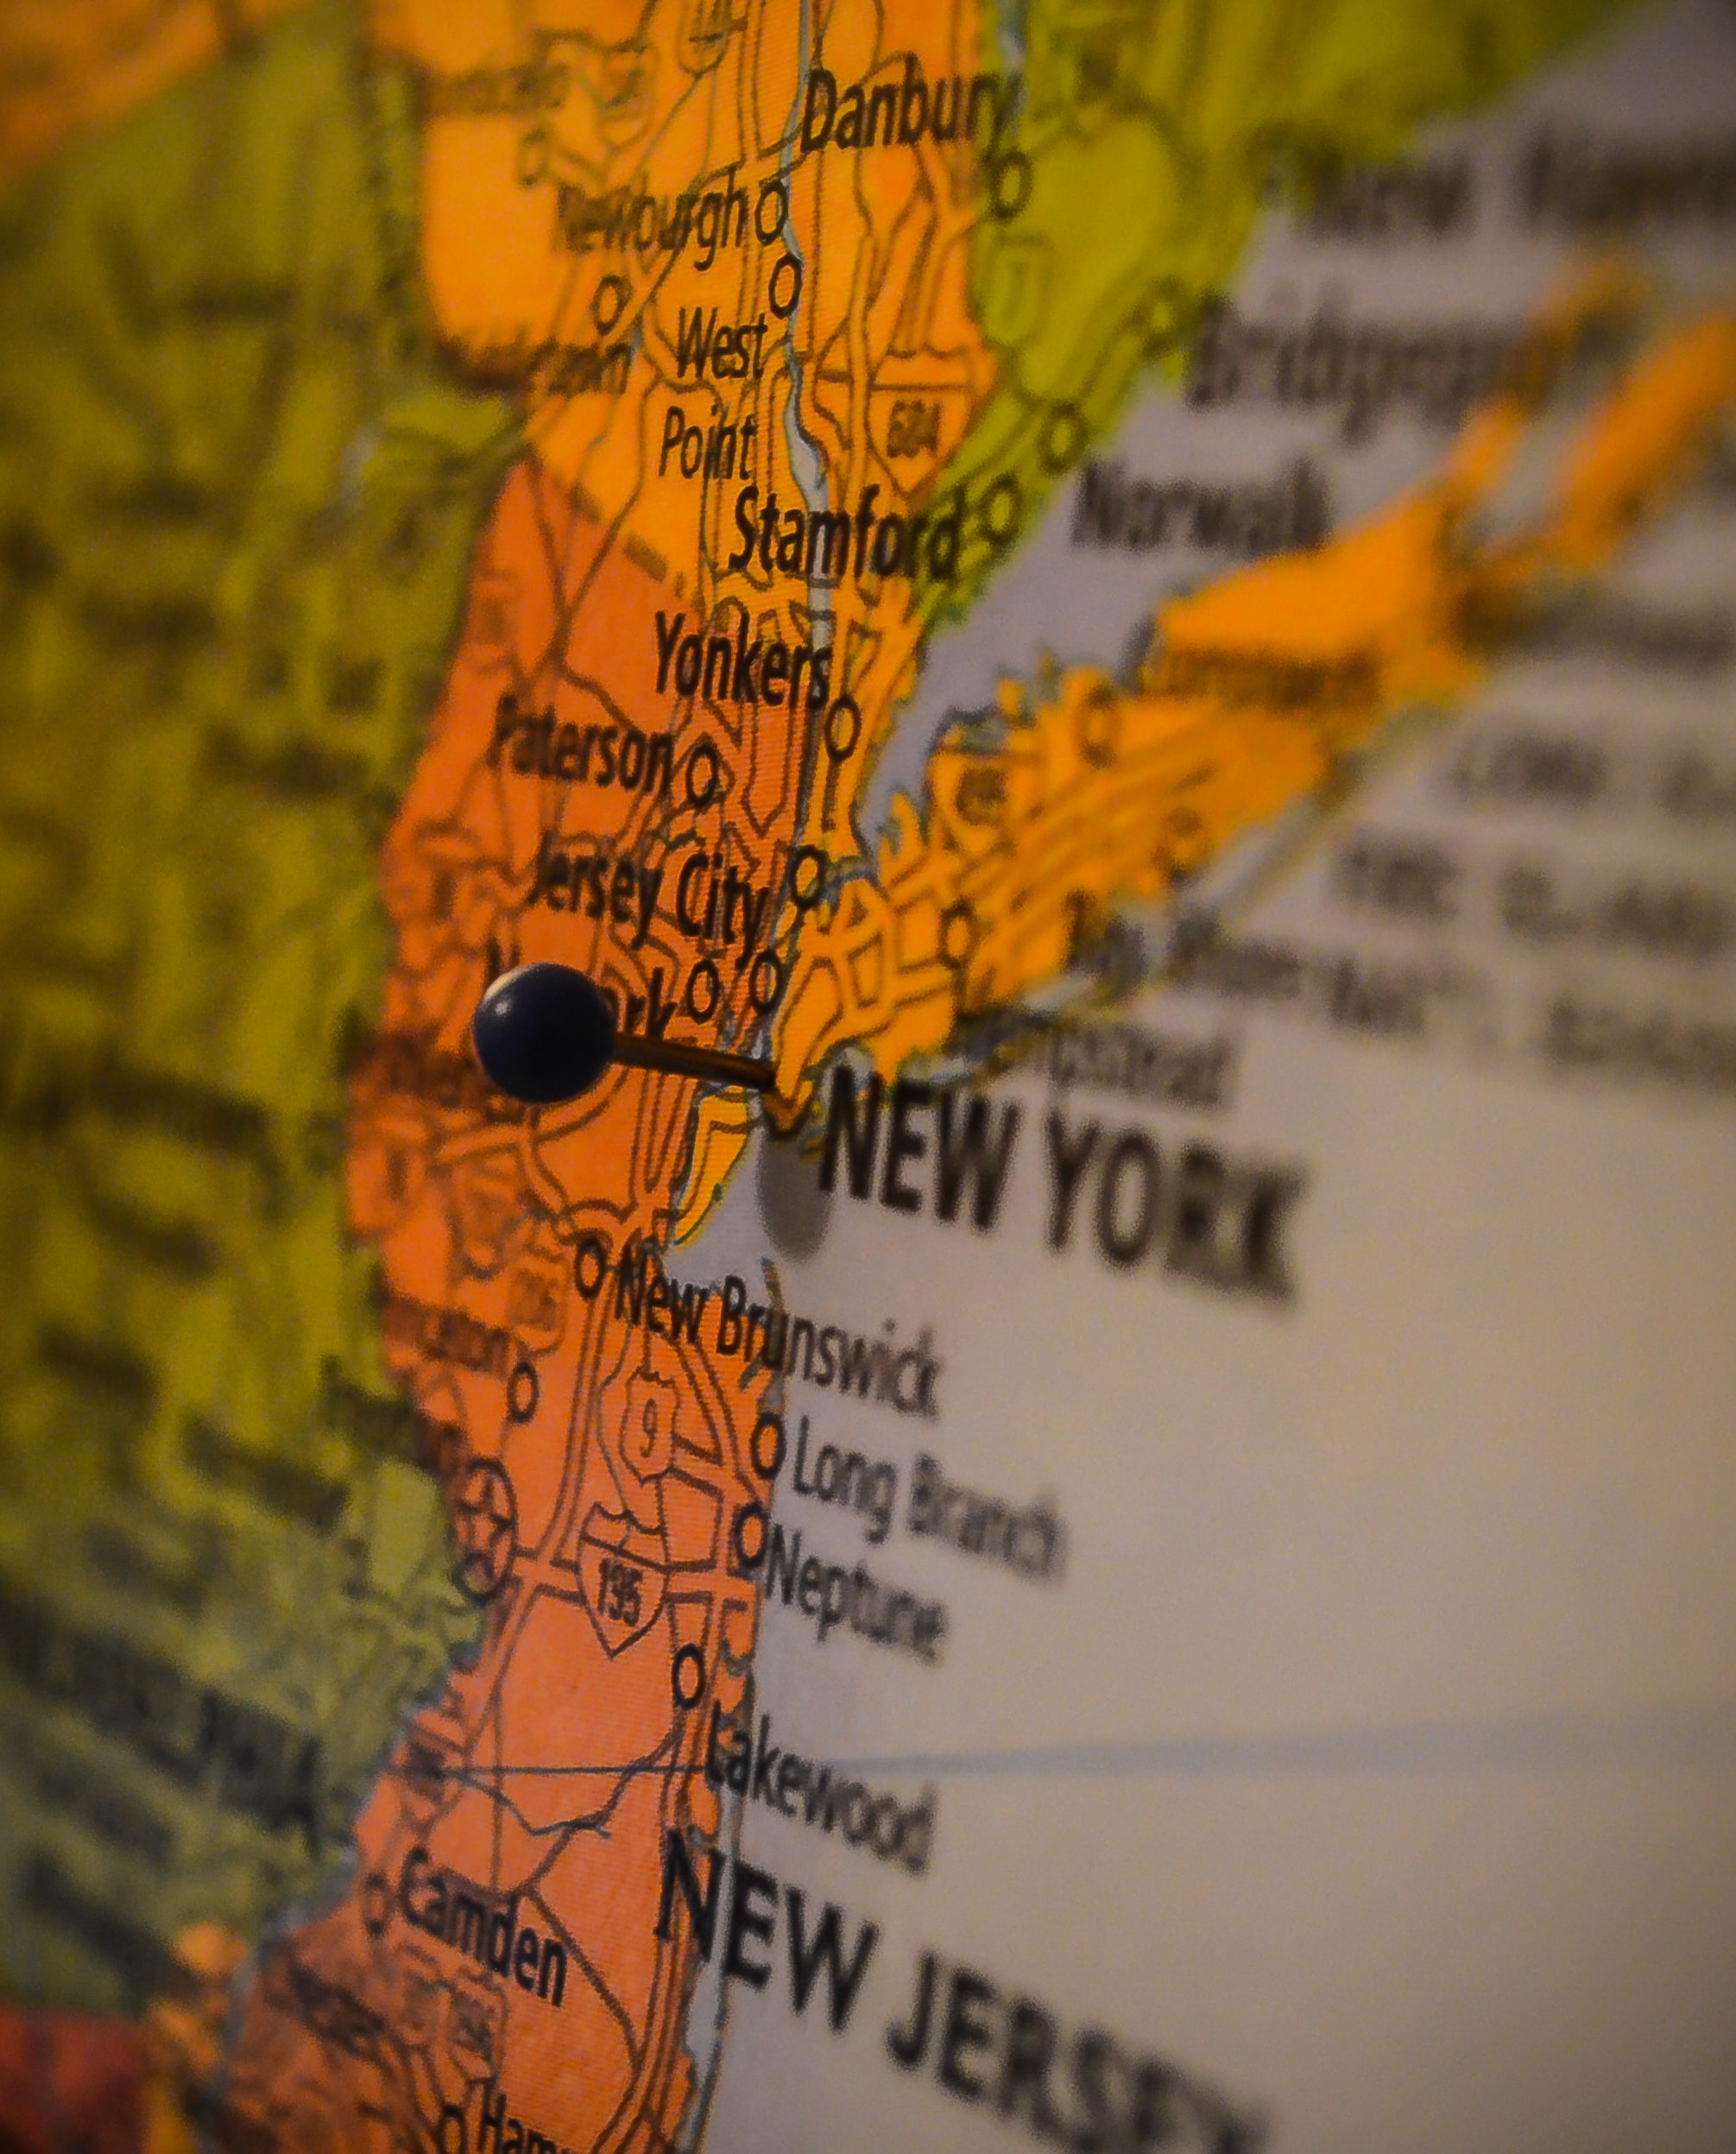 A close-up of a map with a pin stuck into it at the area of New York